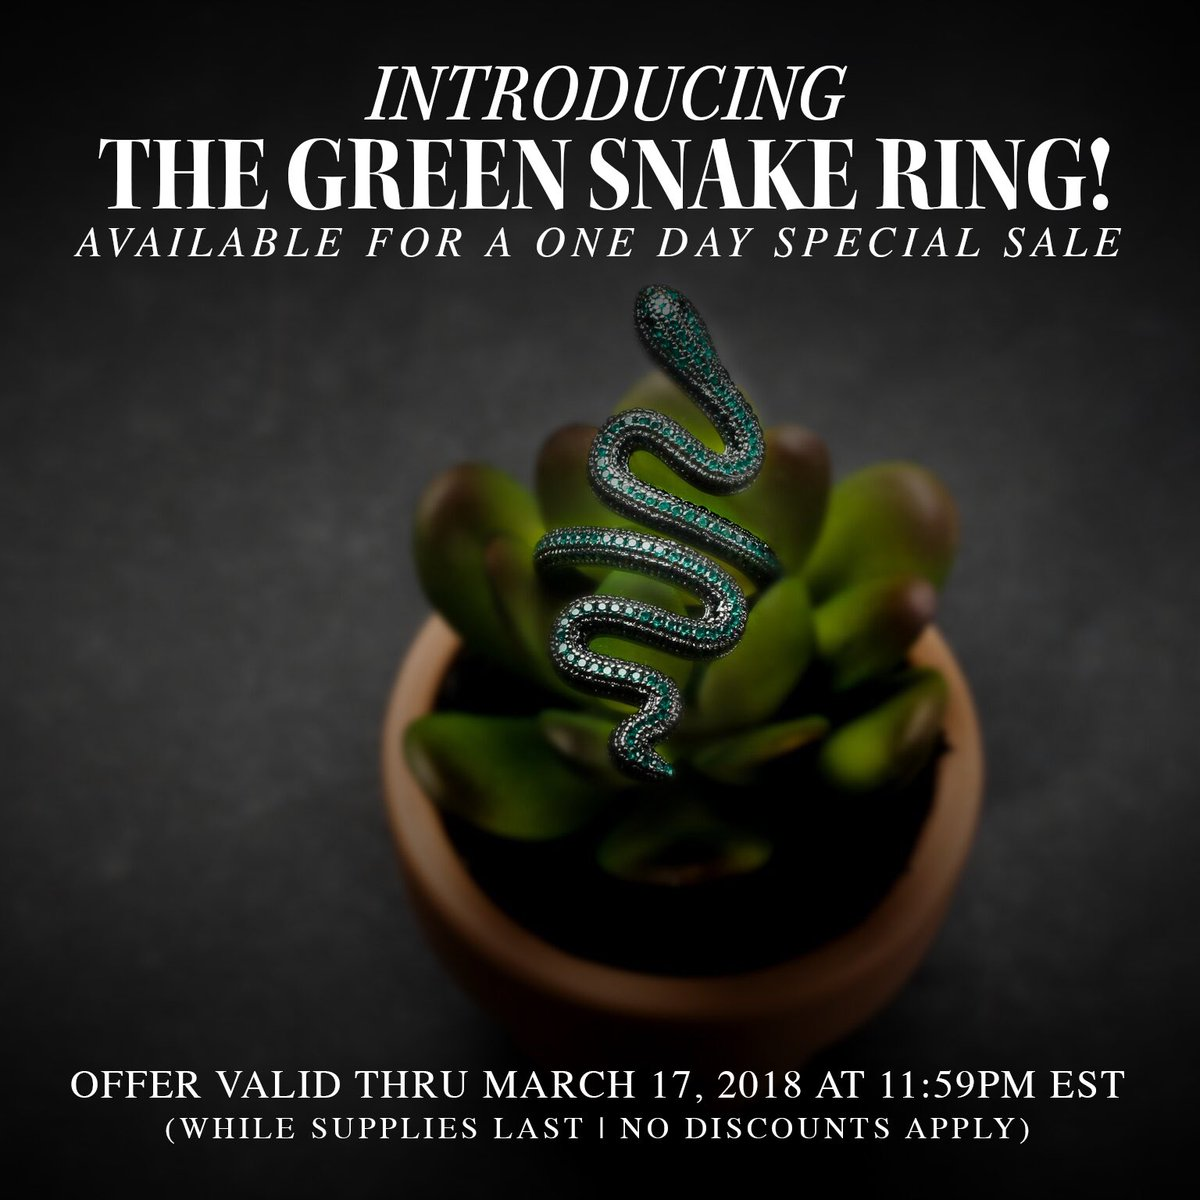 Call it what you want, but we're calling it a St. Patrick's Day One Day Special Sale! The new Green Snake Ring is available now until 11:59p EST today (while supplies last)   Shop here: https://t.co/4CNWjc0Tux